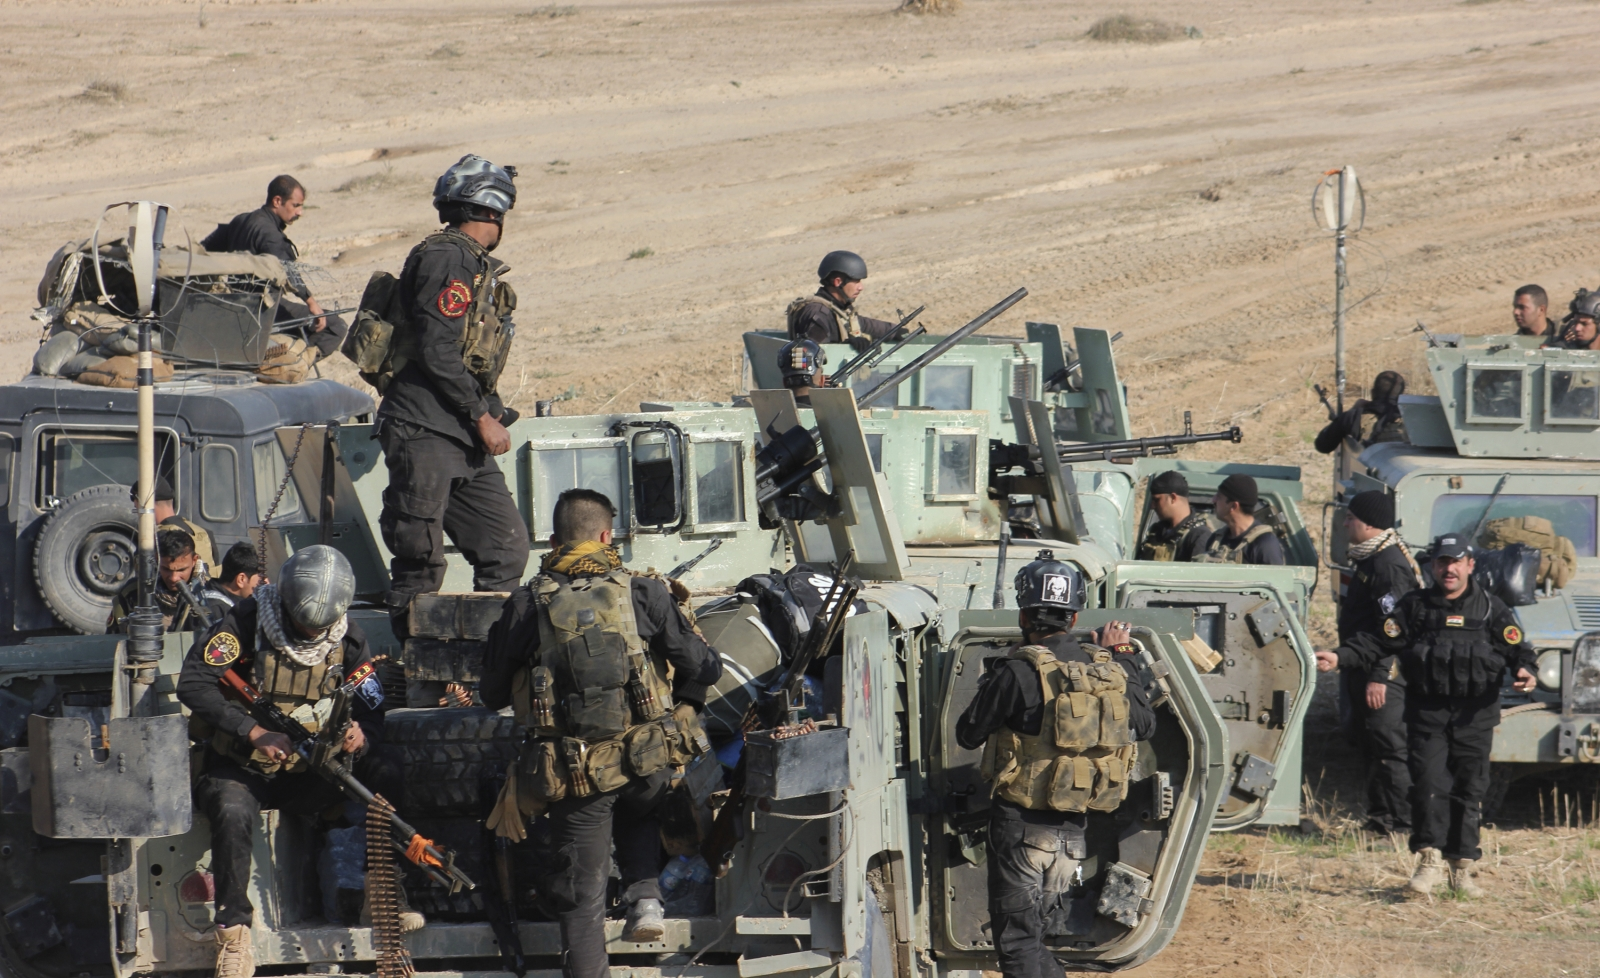 More US-led troops in Iraq to combat Isis